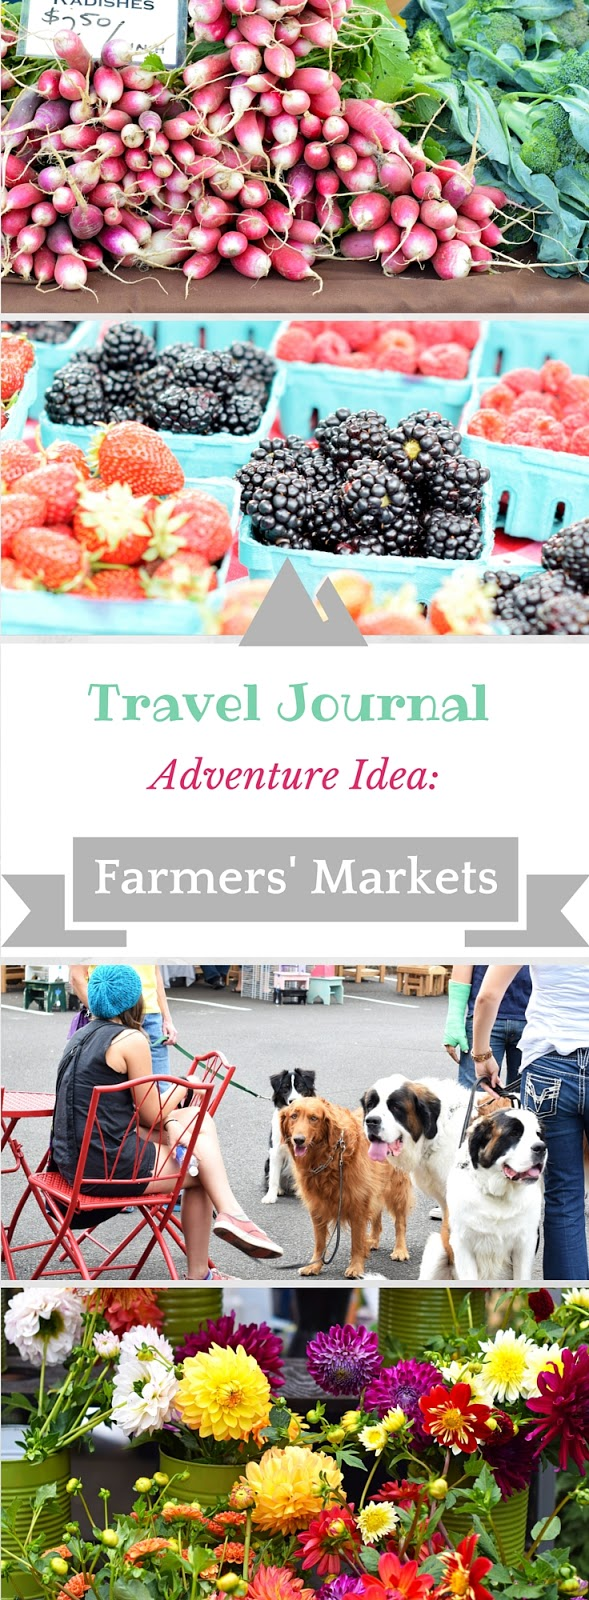 Travel Journal ideas: Local Farmers' Markets. The Salem Oregon weather lends itself to one of the best farmers' markets. Enjoy local produce, flowers and entertainment. Great family activity whether traveling or as a resident.